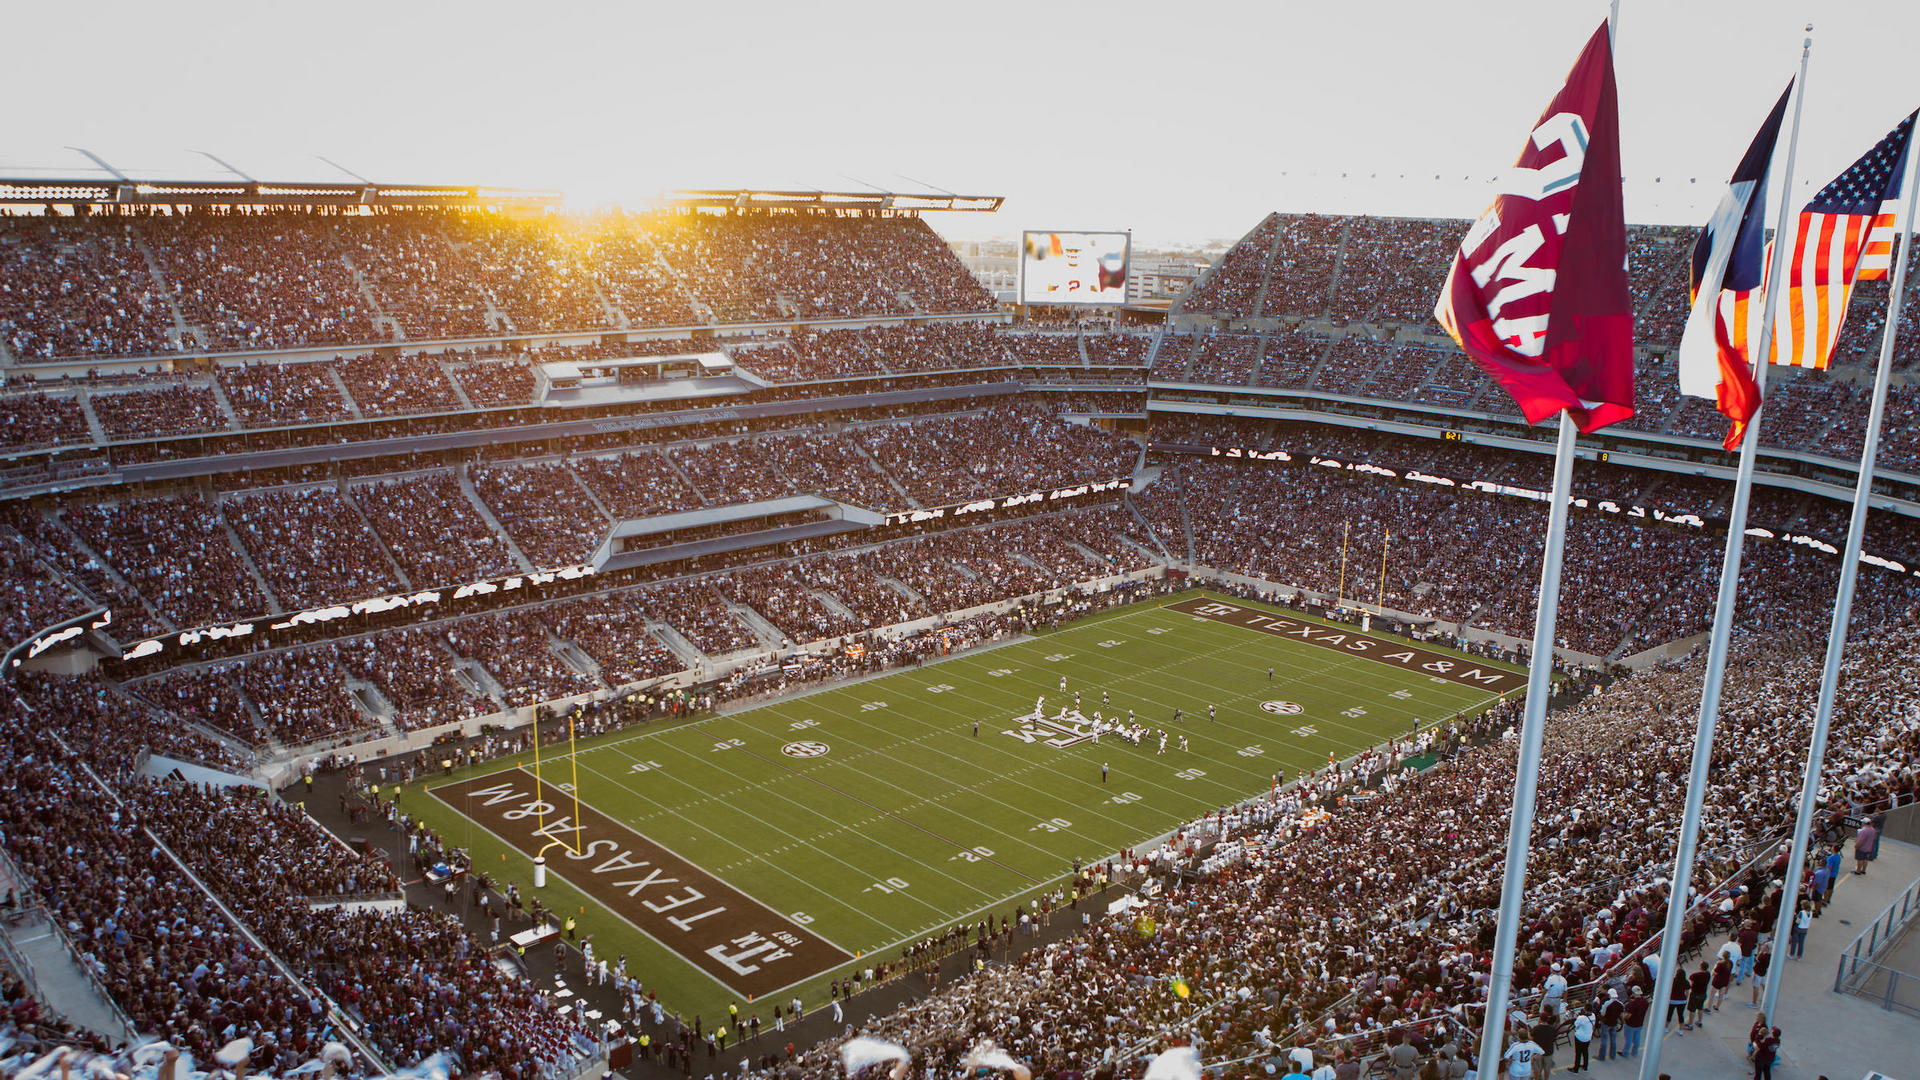 kyle field on gameday